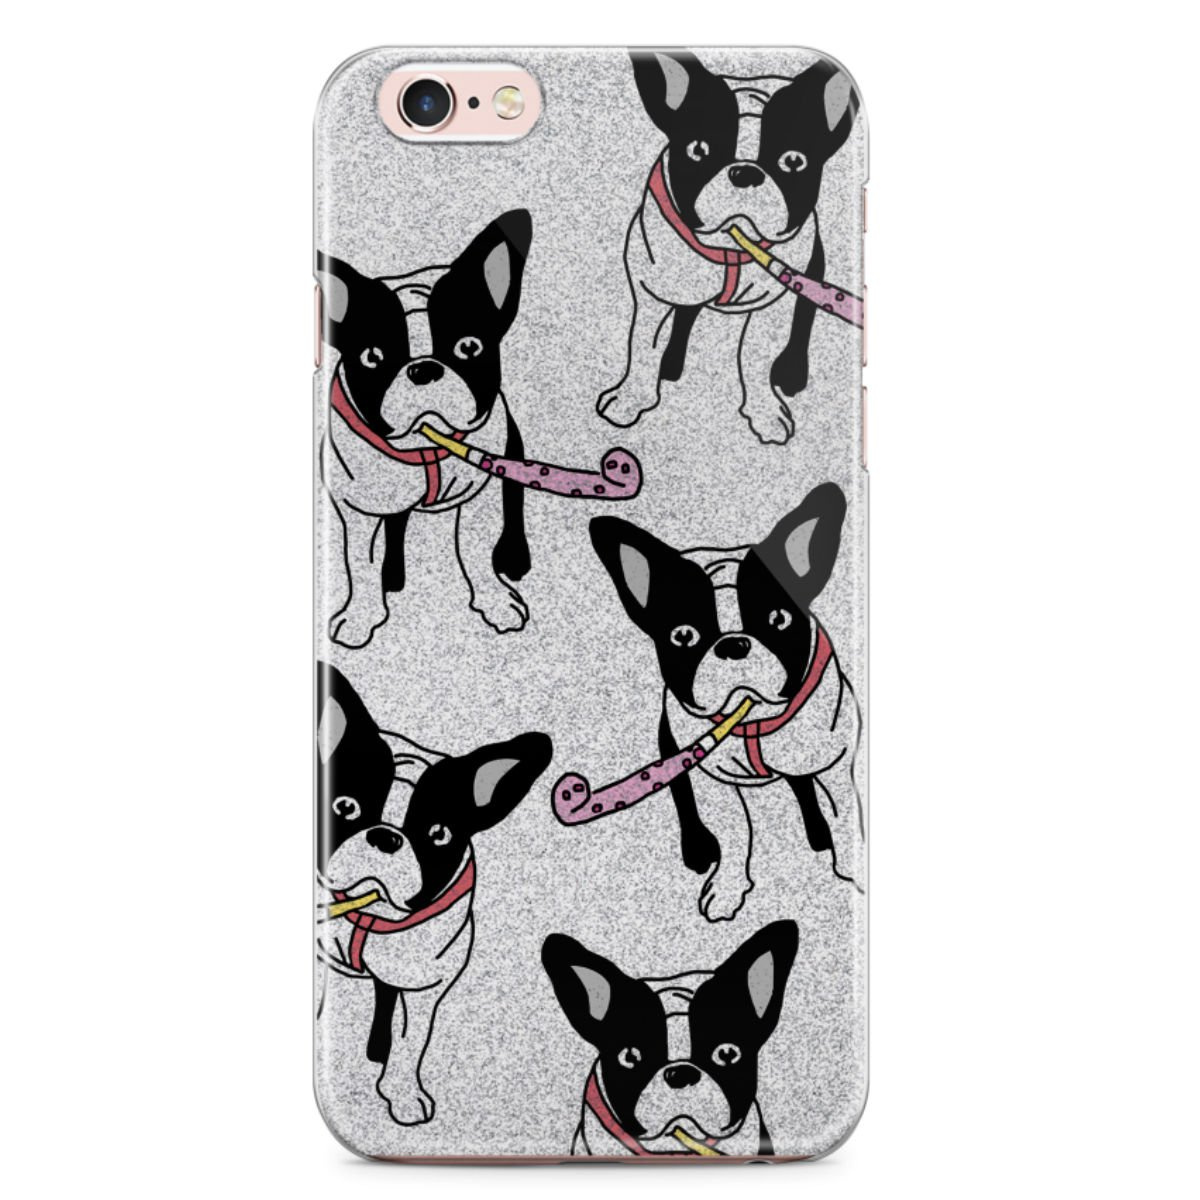 Kryt na iPhone 6 6s Yeah Bunny - Glitter Frenchie  23d40738d91